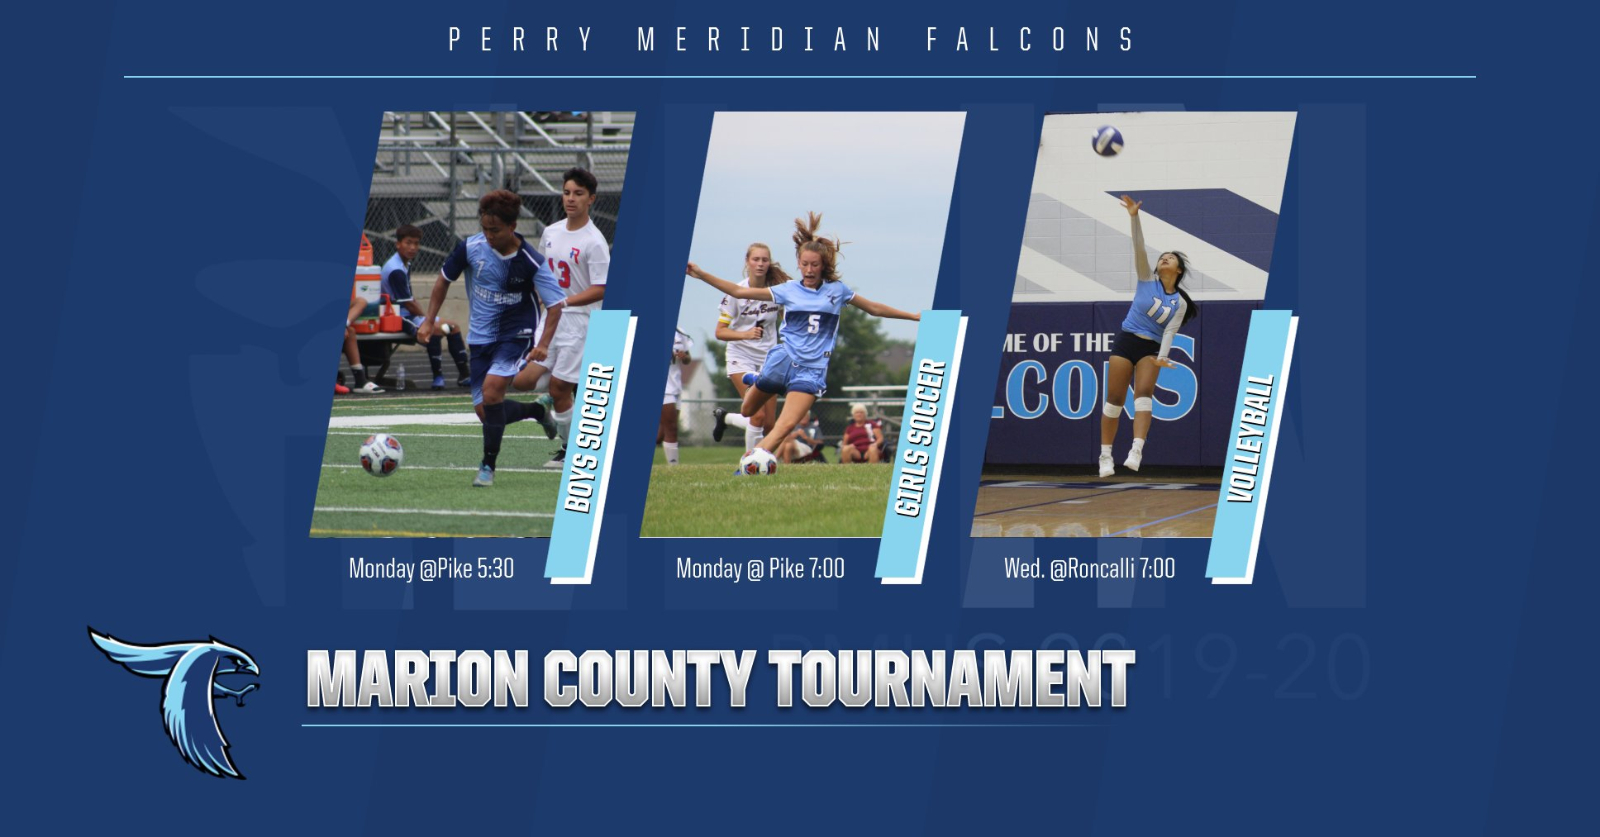 FALCONS look to advance in County Tournaments